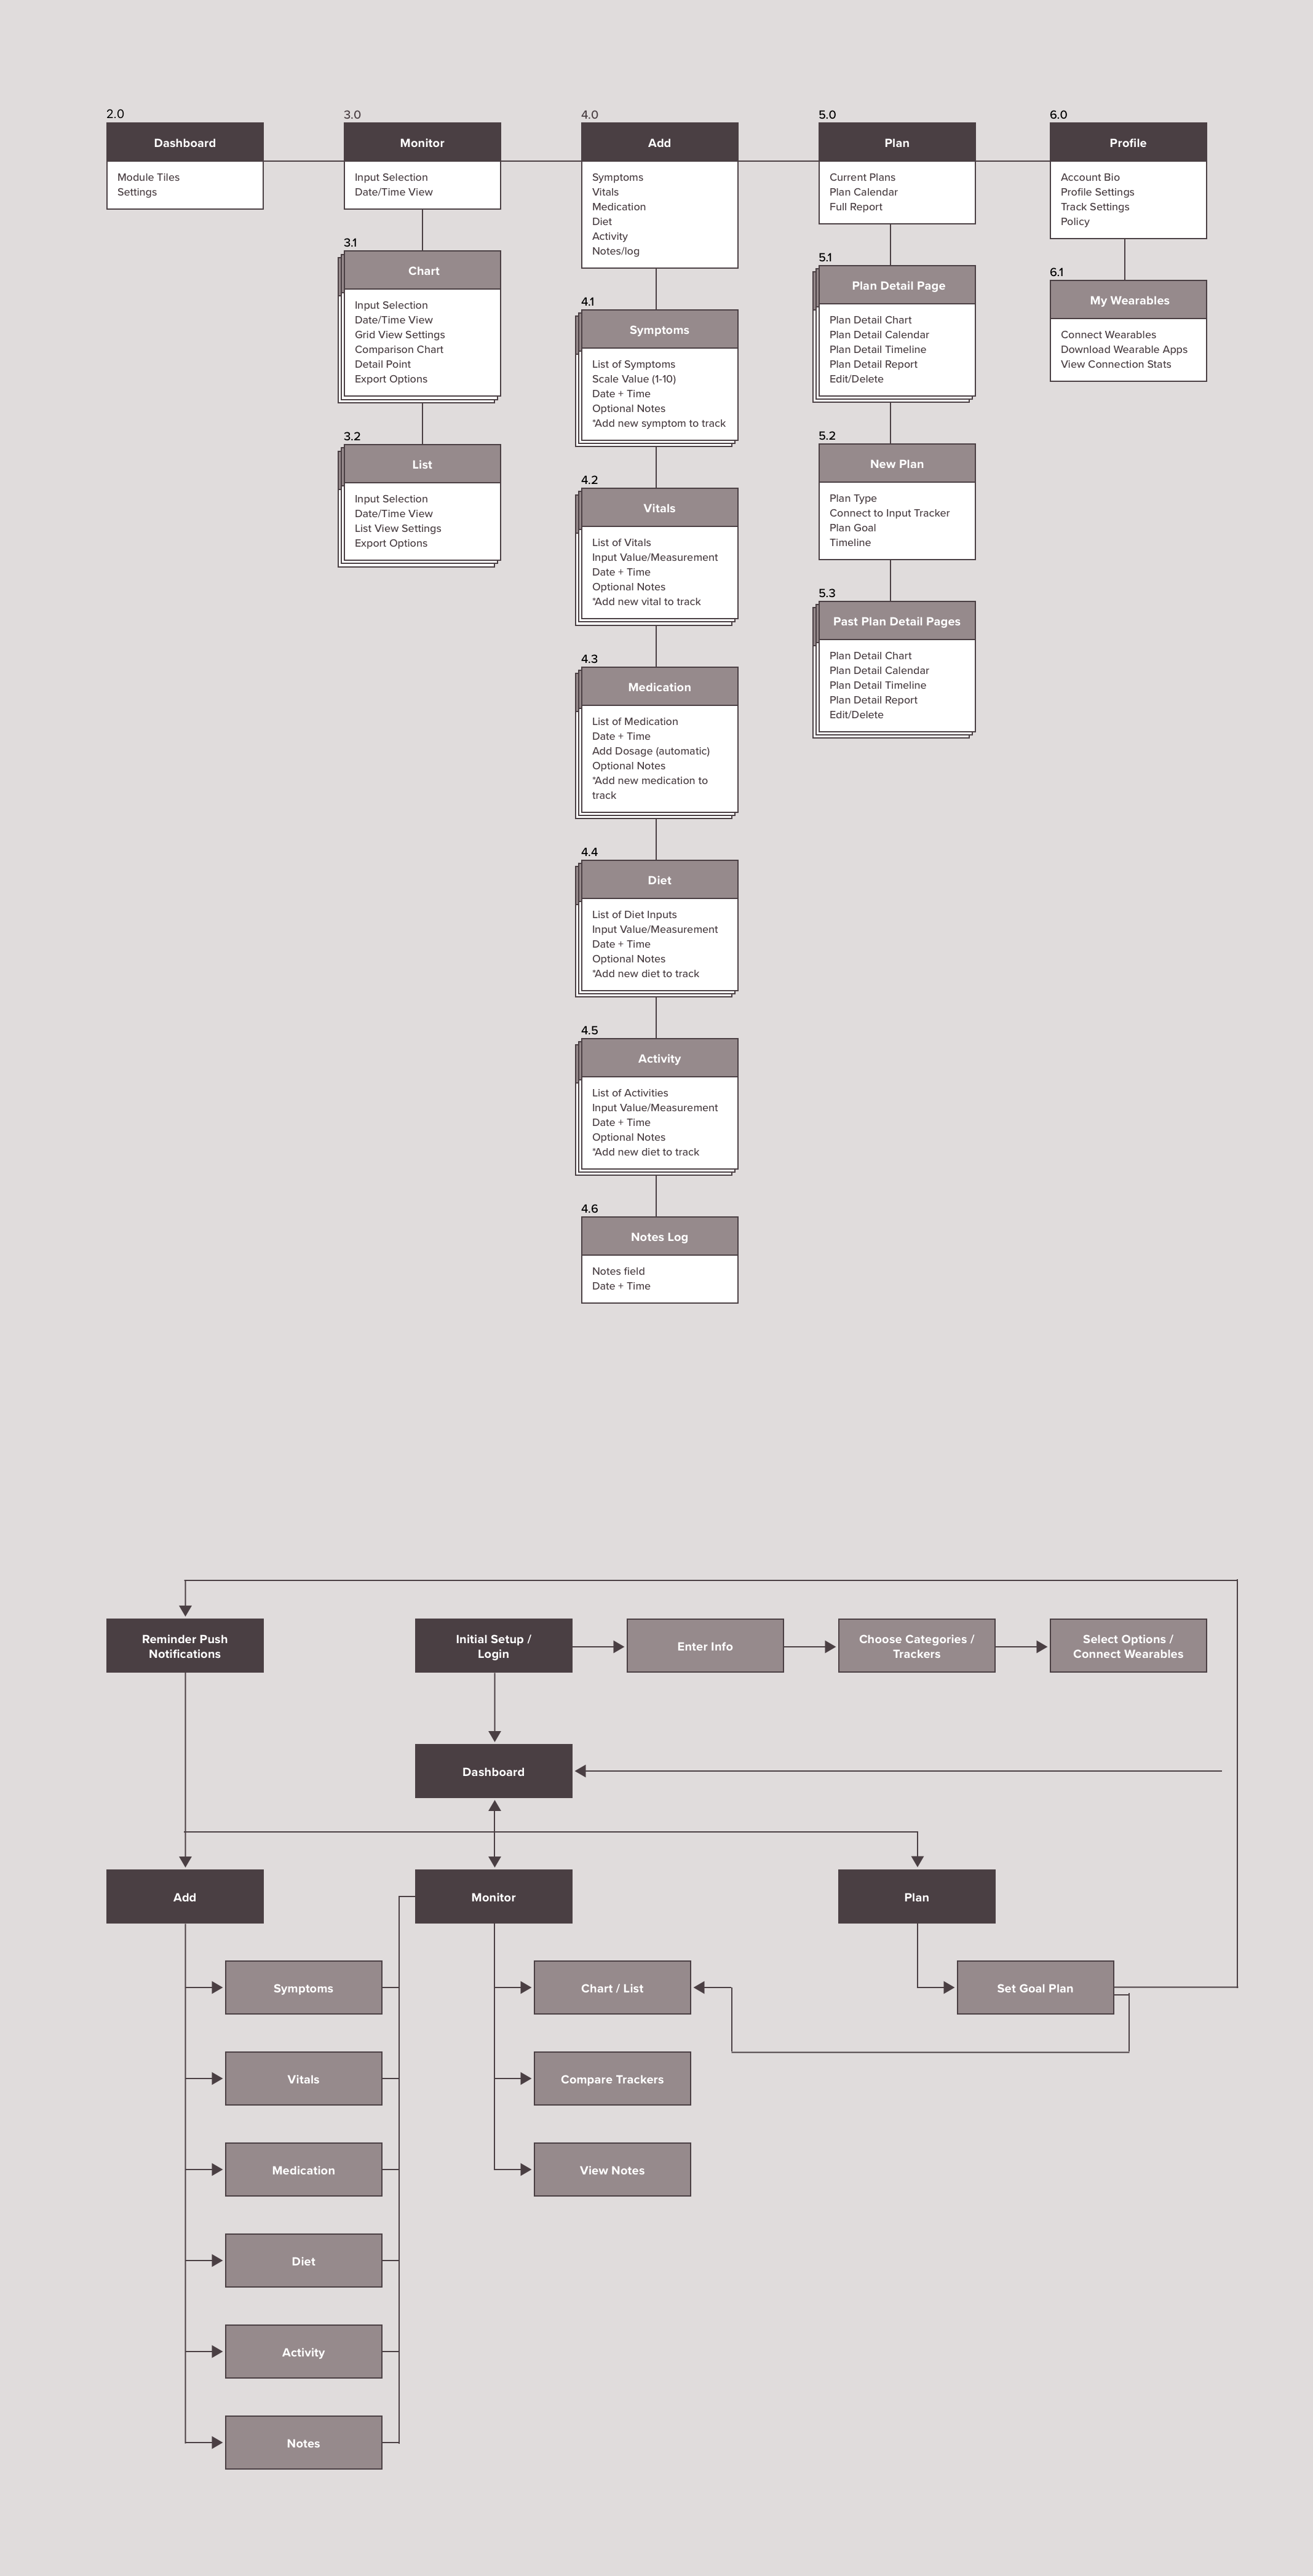 dm_checkin_sitemap.png